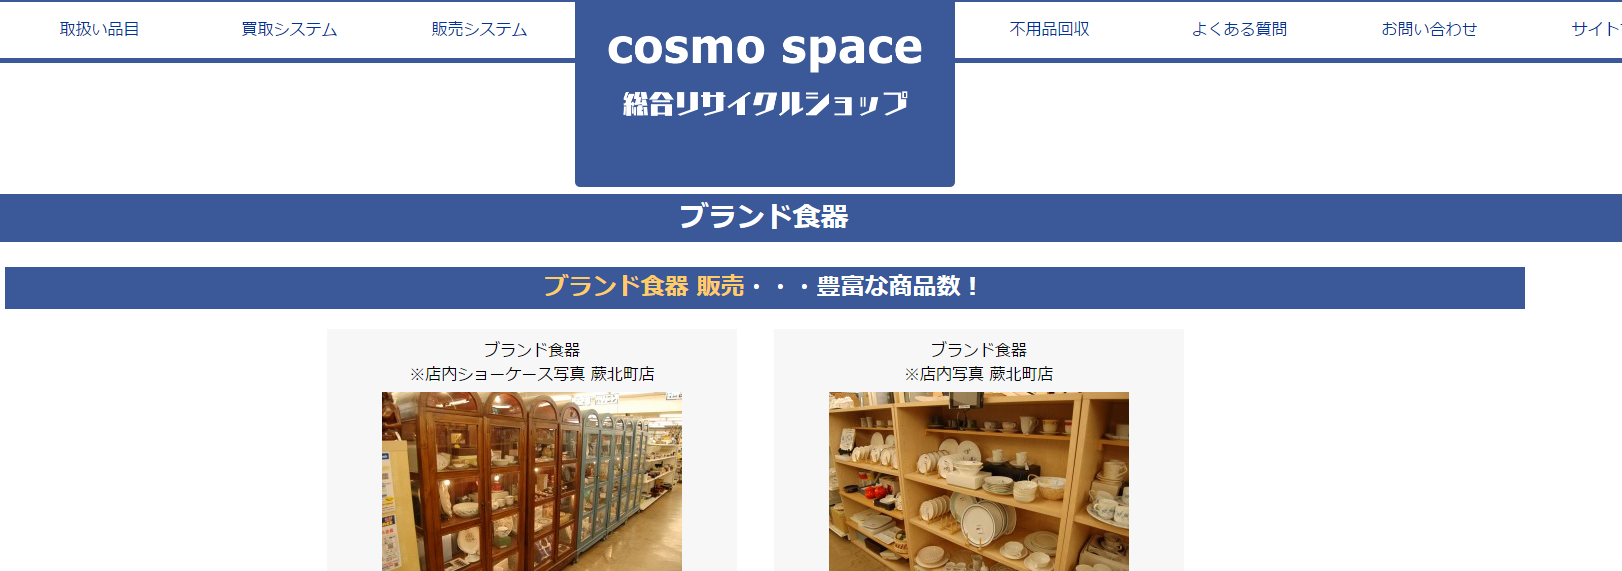 cosmo space